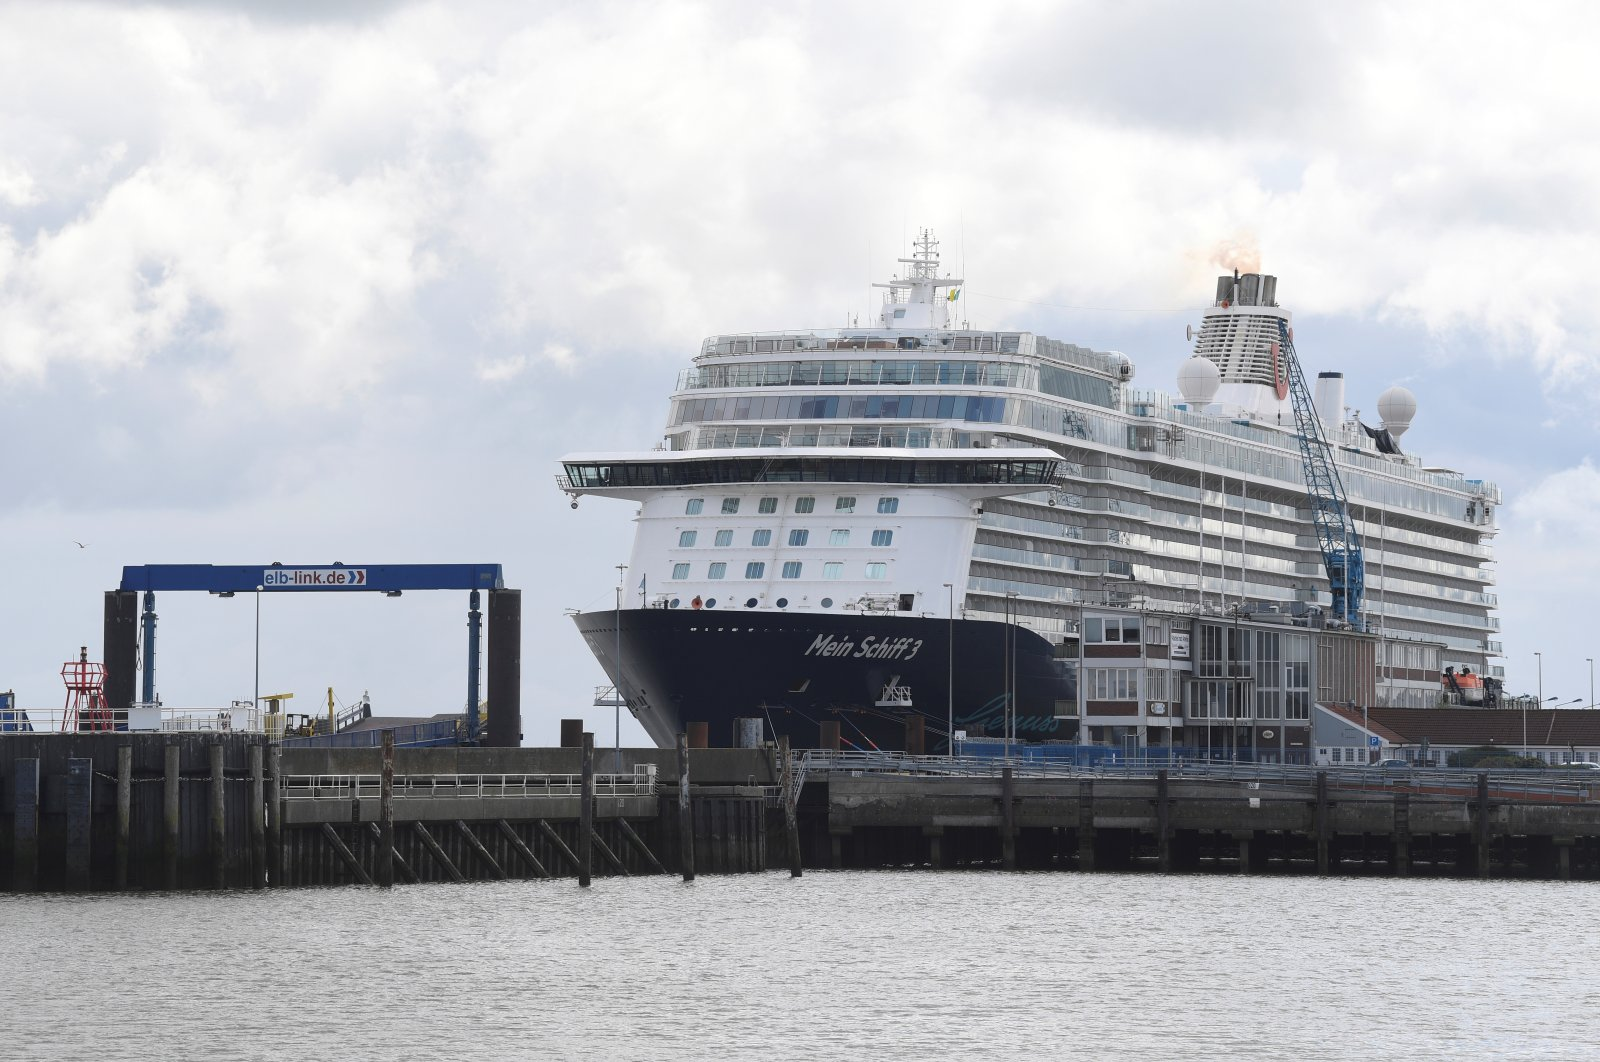 Cruise ship Mein Schiff 3 sits in the harbor with nearly 3,000 travel agency TUI staff members quarantined onboard, according to local media, during the coronavirus pandemic, Cuxhaven, Germany, May 2, 2020. (Reuters Photo)